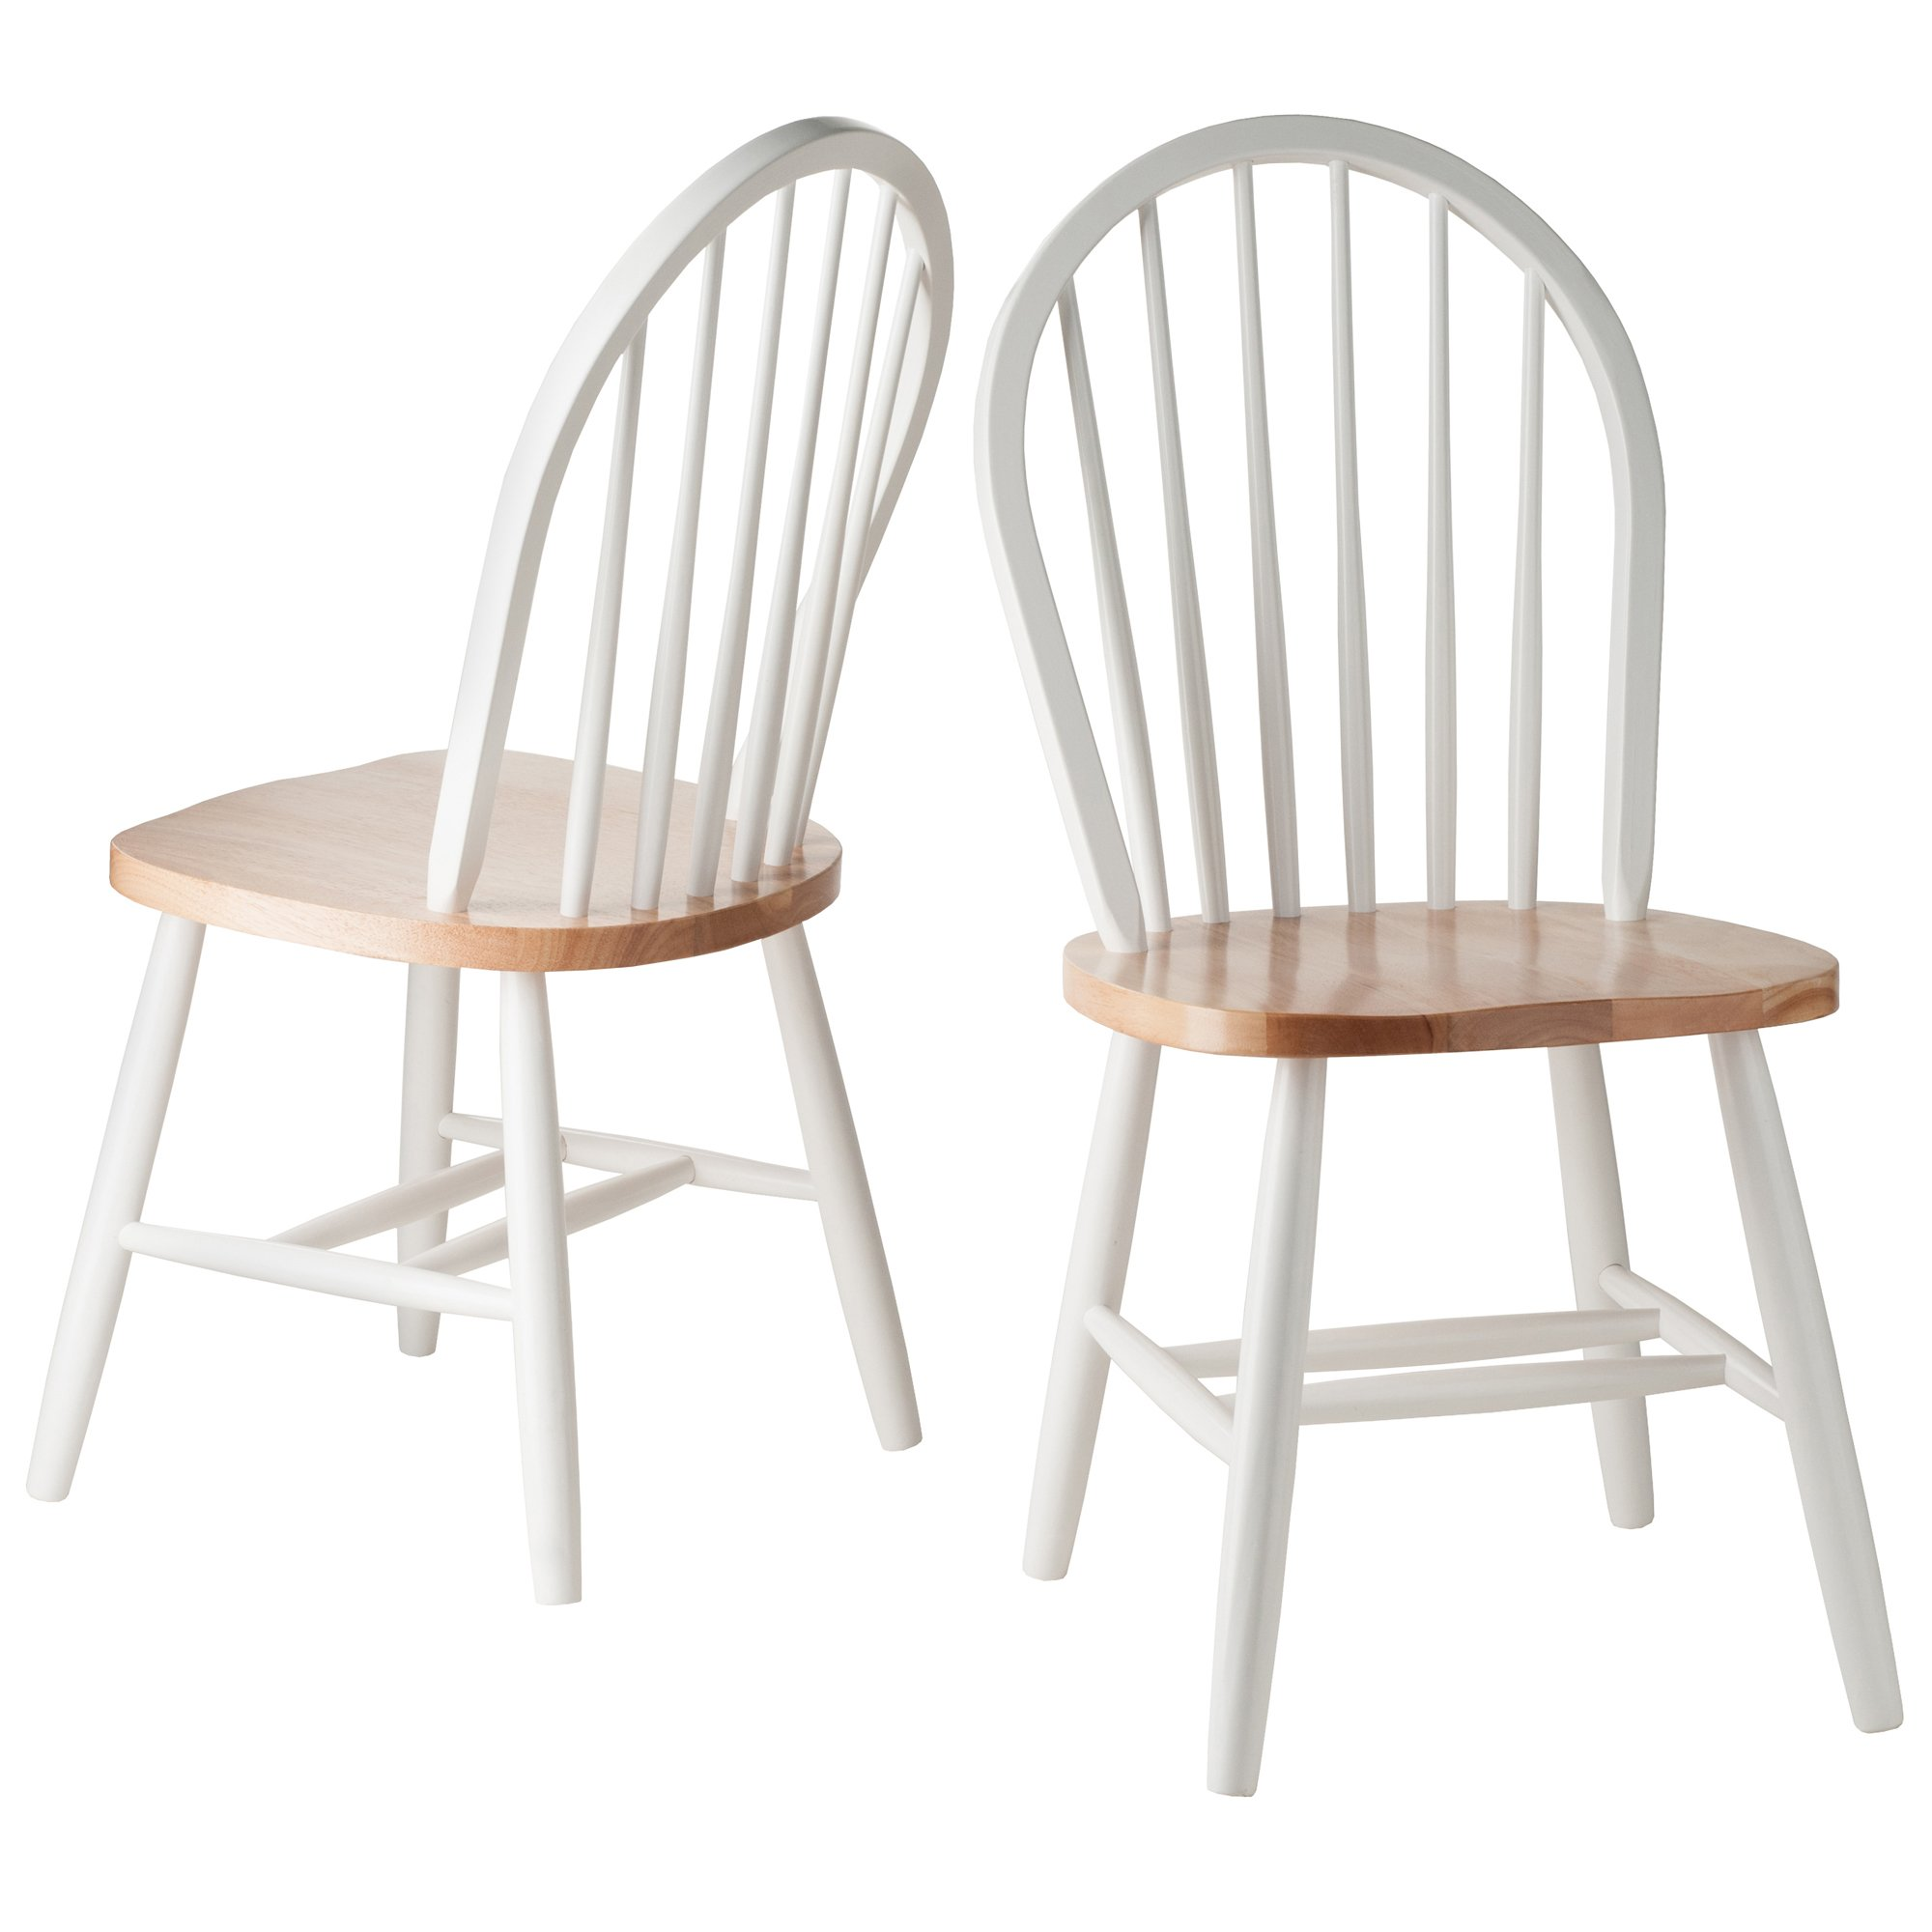 Winsome Wood Windsor Chair In Natural And White Finish, Set Of 2